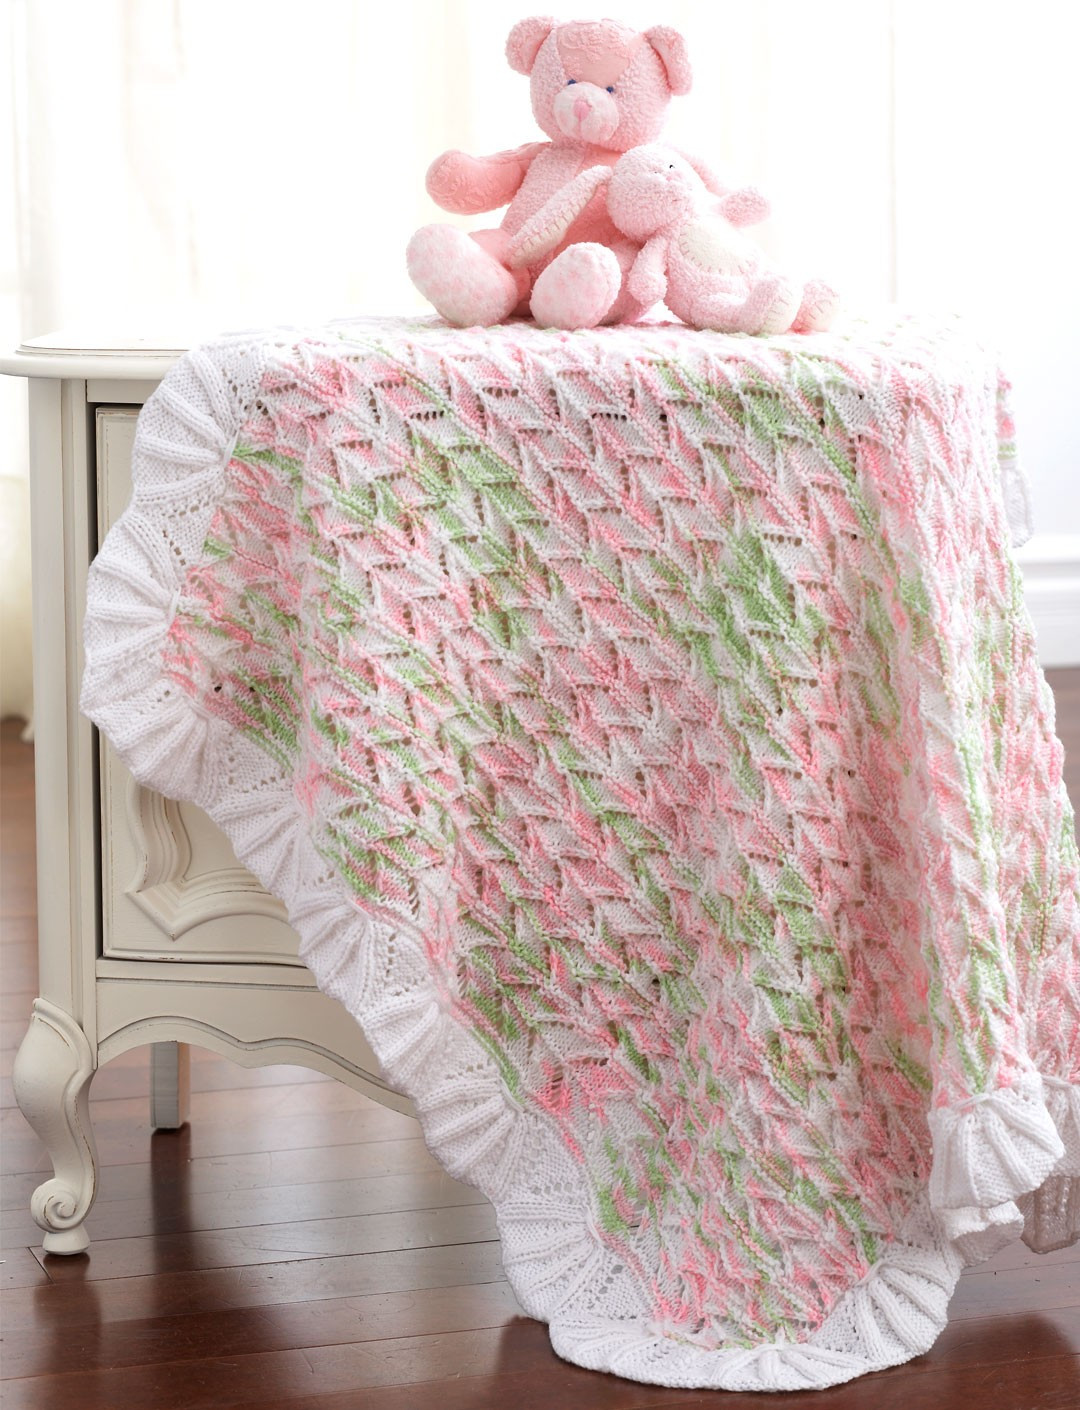 Lovely A some Baby Blanket Knitting Patterns Light Weight Yarn Crochet Patterns Of Awesome 40 Pics Light Weight Yarn Crochet Patterns